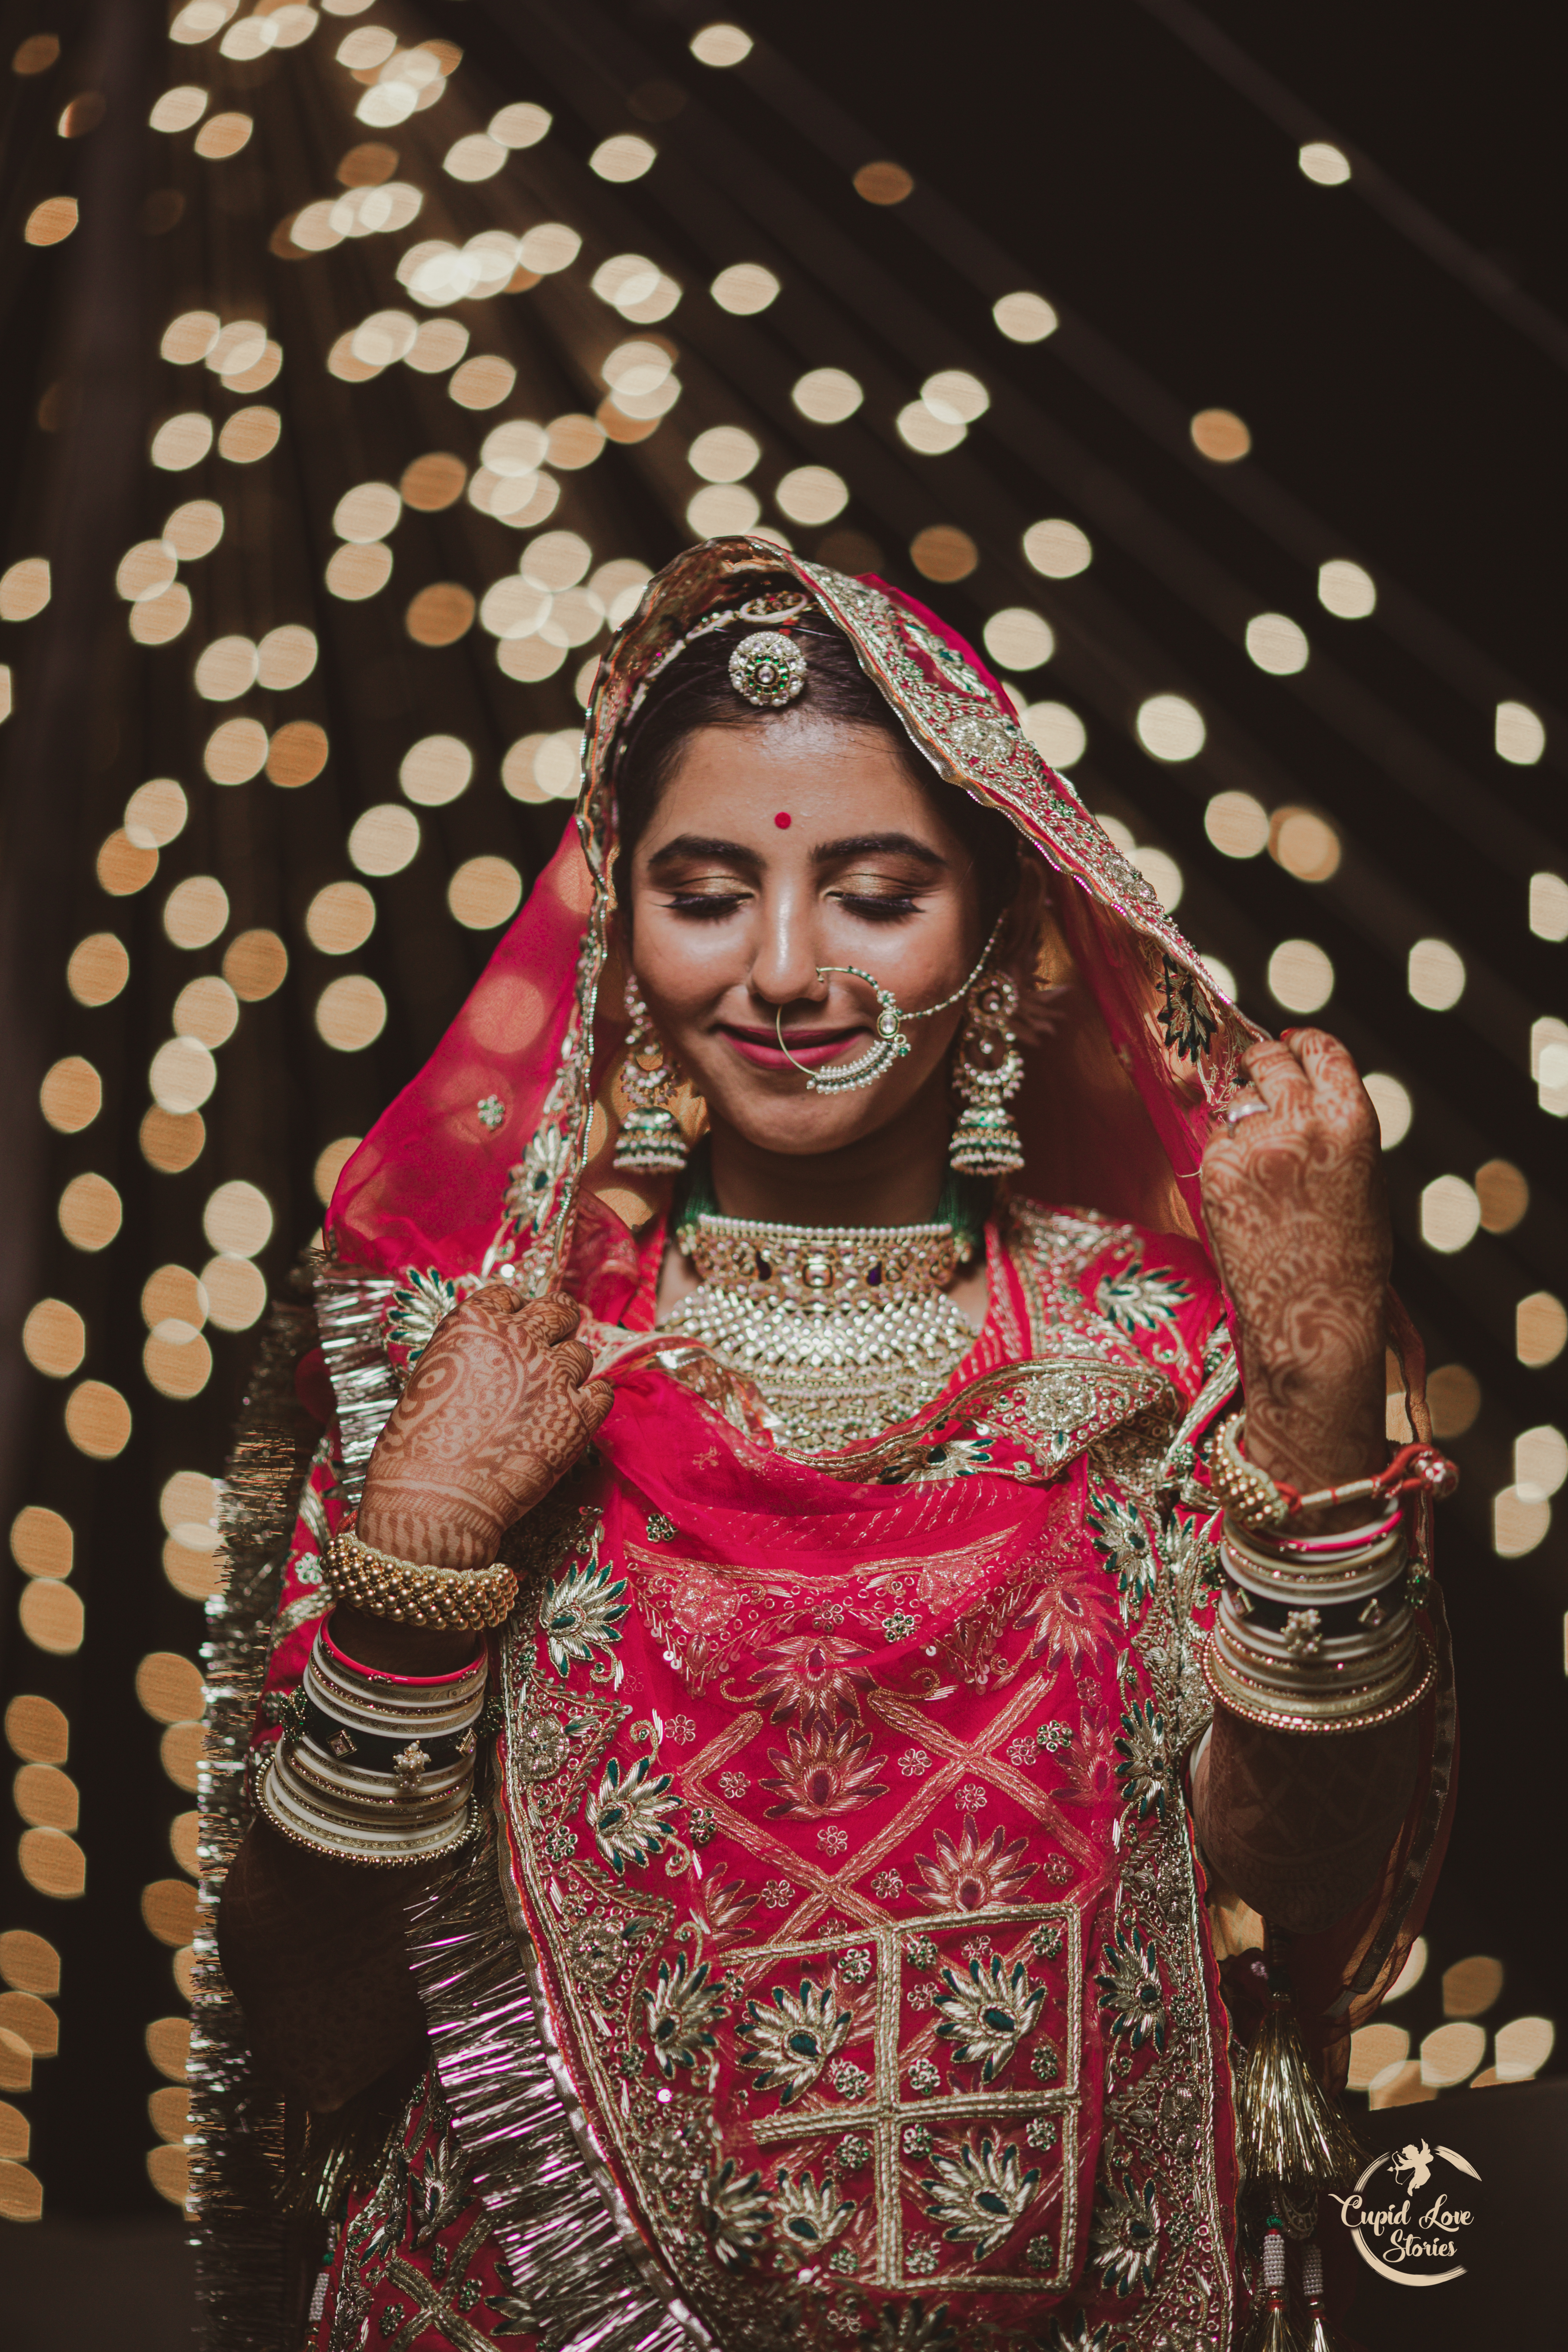 Beautiful bride in red under the lights